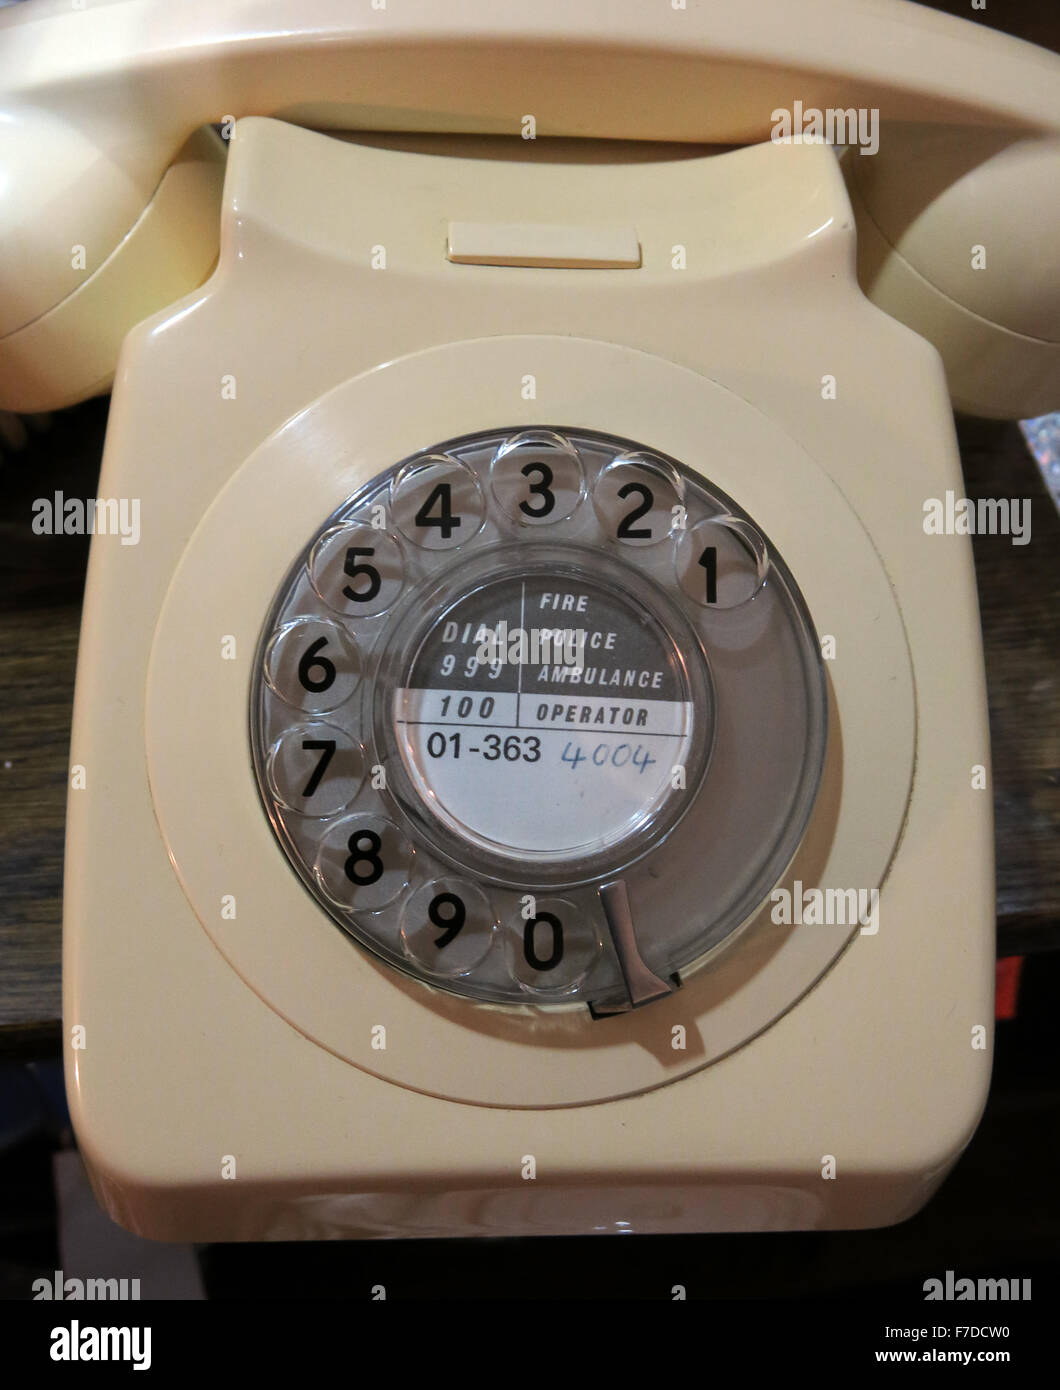 dial,code,old,fashioned,fashioned,ivory,BT,British,Telecom,British Telecom,phone,zero,for,operator,999,technology,emergency,comms,communication,operator,homephone,home,work,vintage,Great Britain,UK,GoTonySmith,Buy Pictures of,Buy Images Of